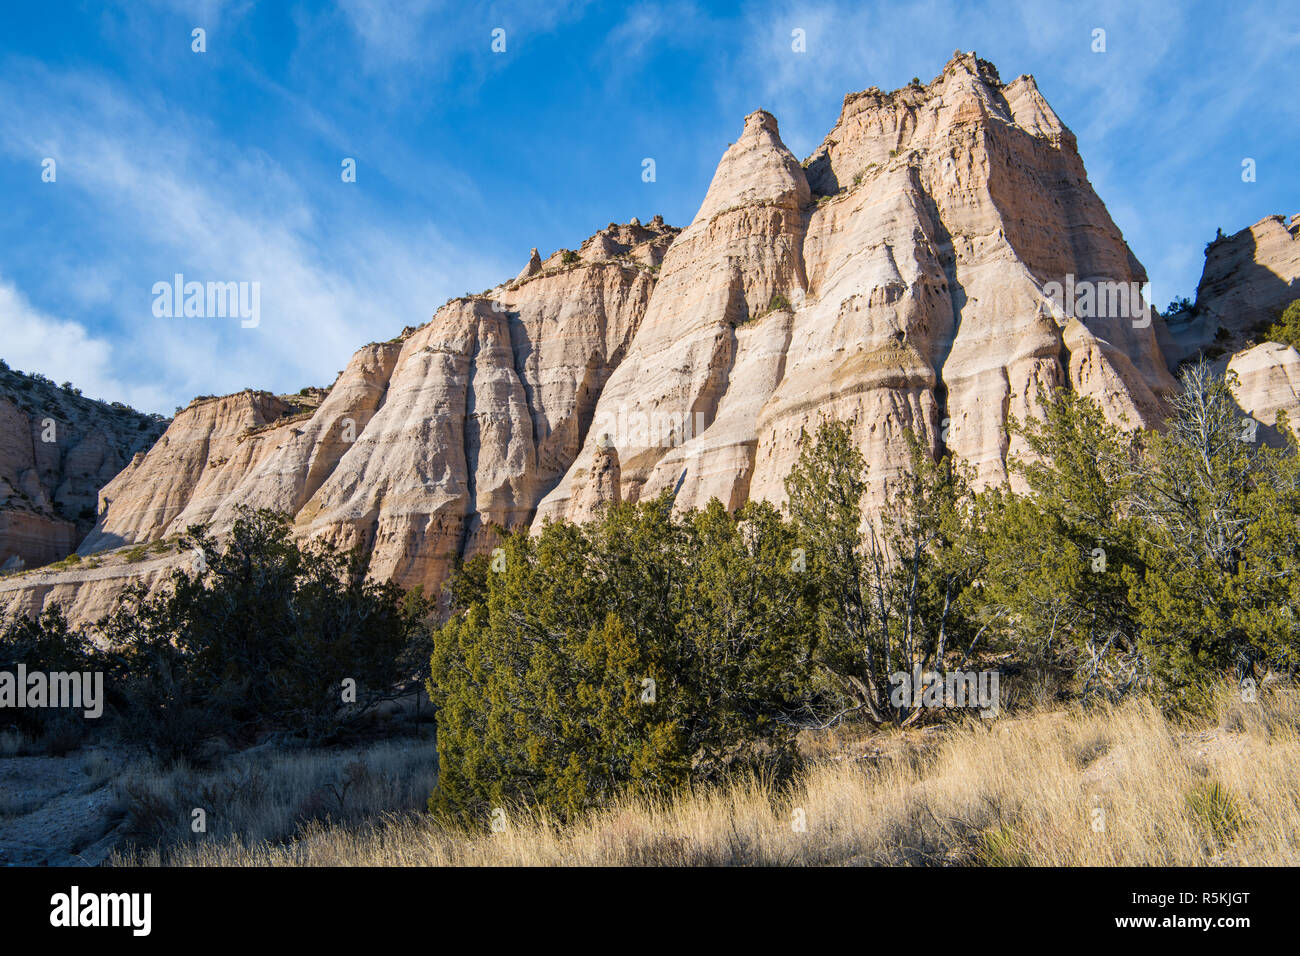 Steep, eroded rock formation with multiple sharp peaks under a blue sky with wispy clouds at Kasha-Katuwe Tent Rocks National Monument, New Mexico - Stock Image